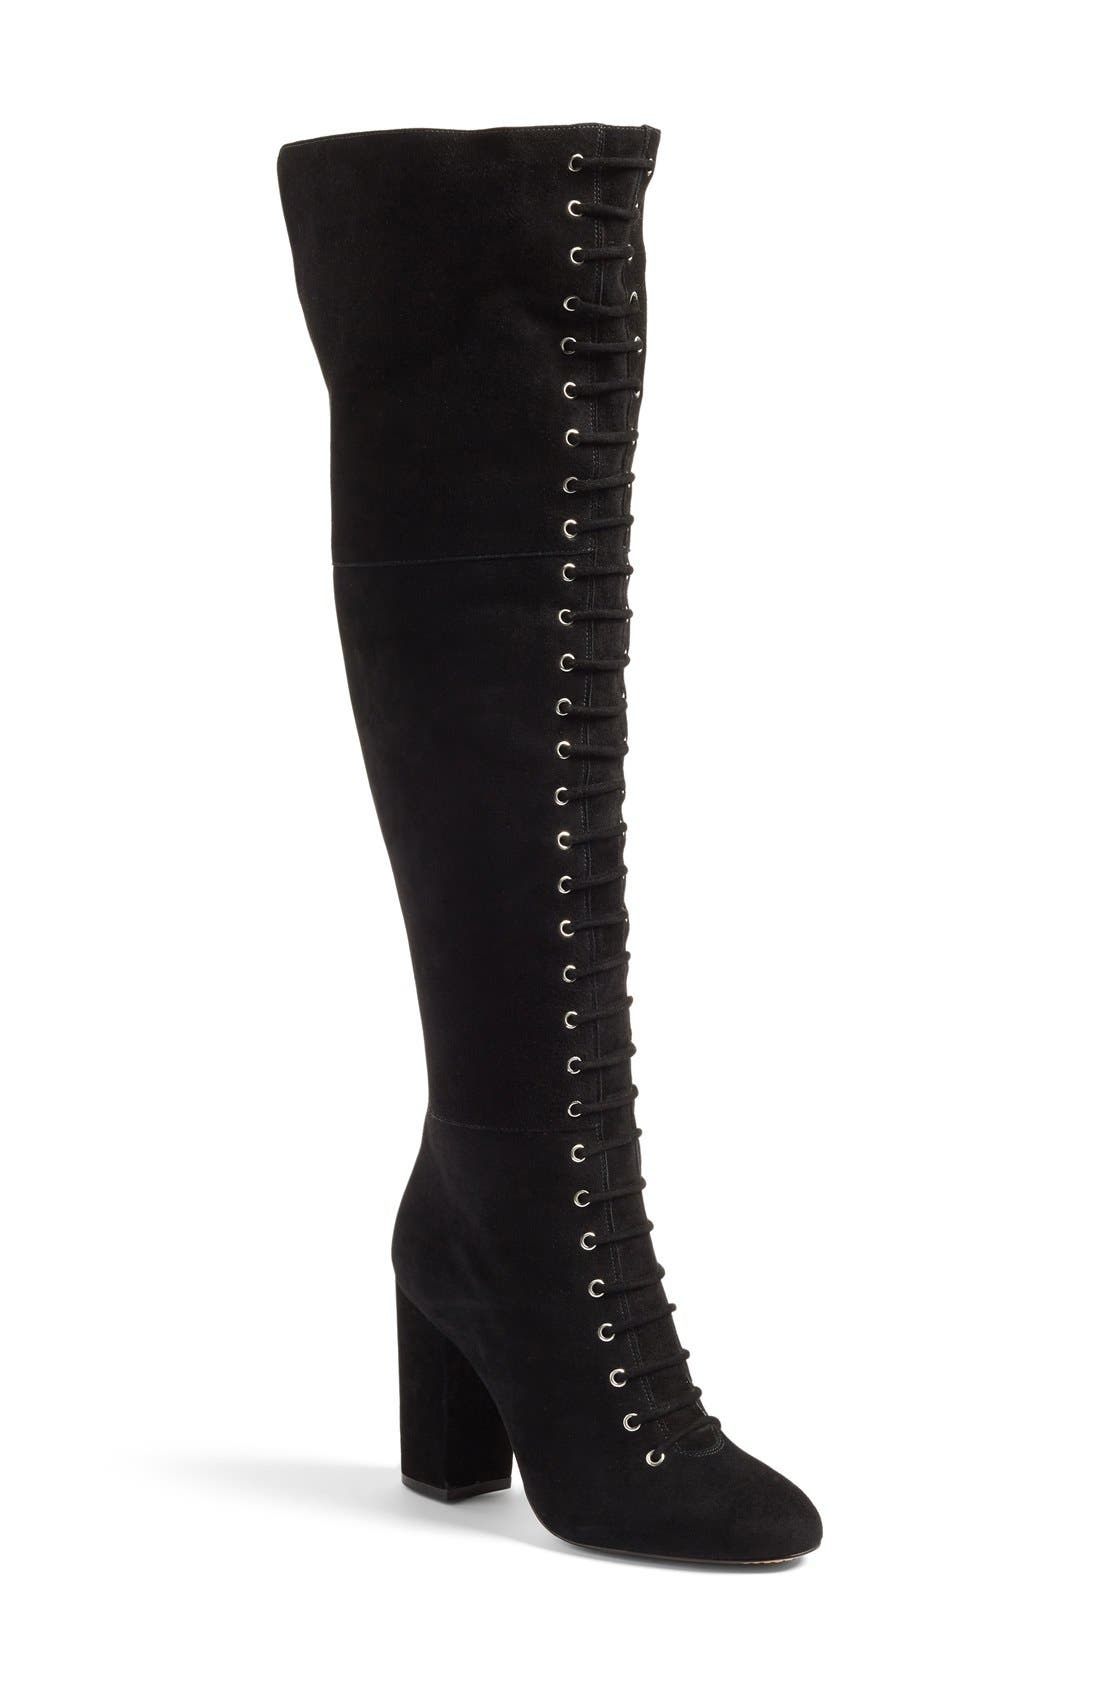 Main Image - Vince Camuto 'Felana' Over the Knee Boot (Women)